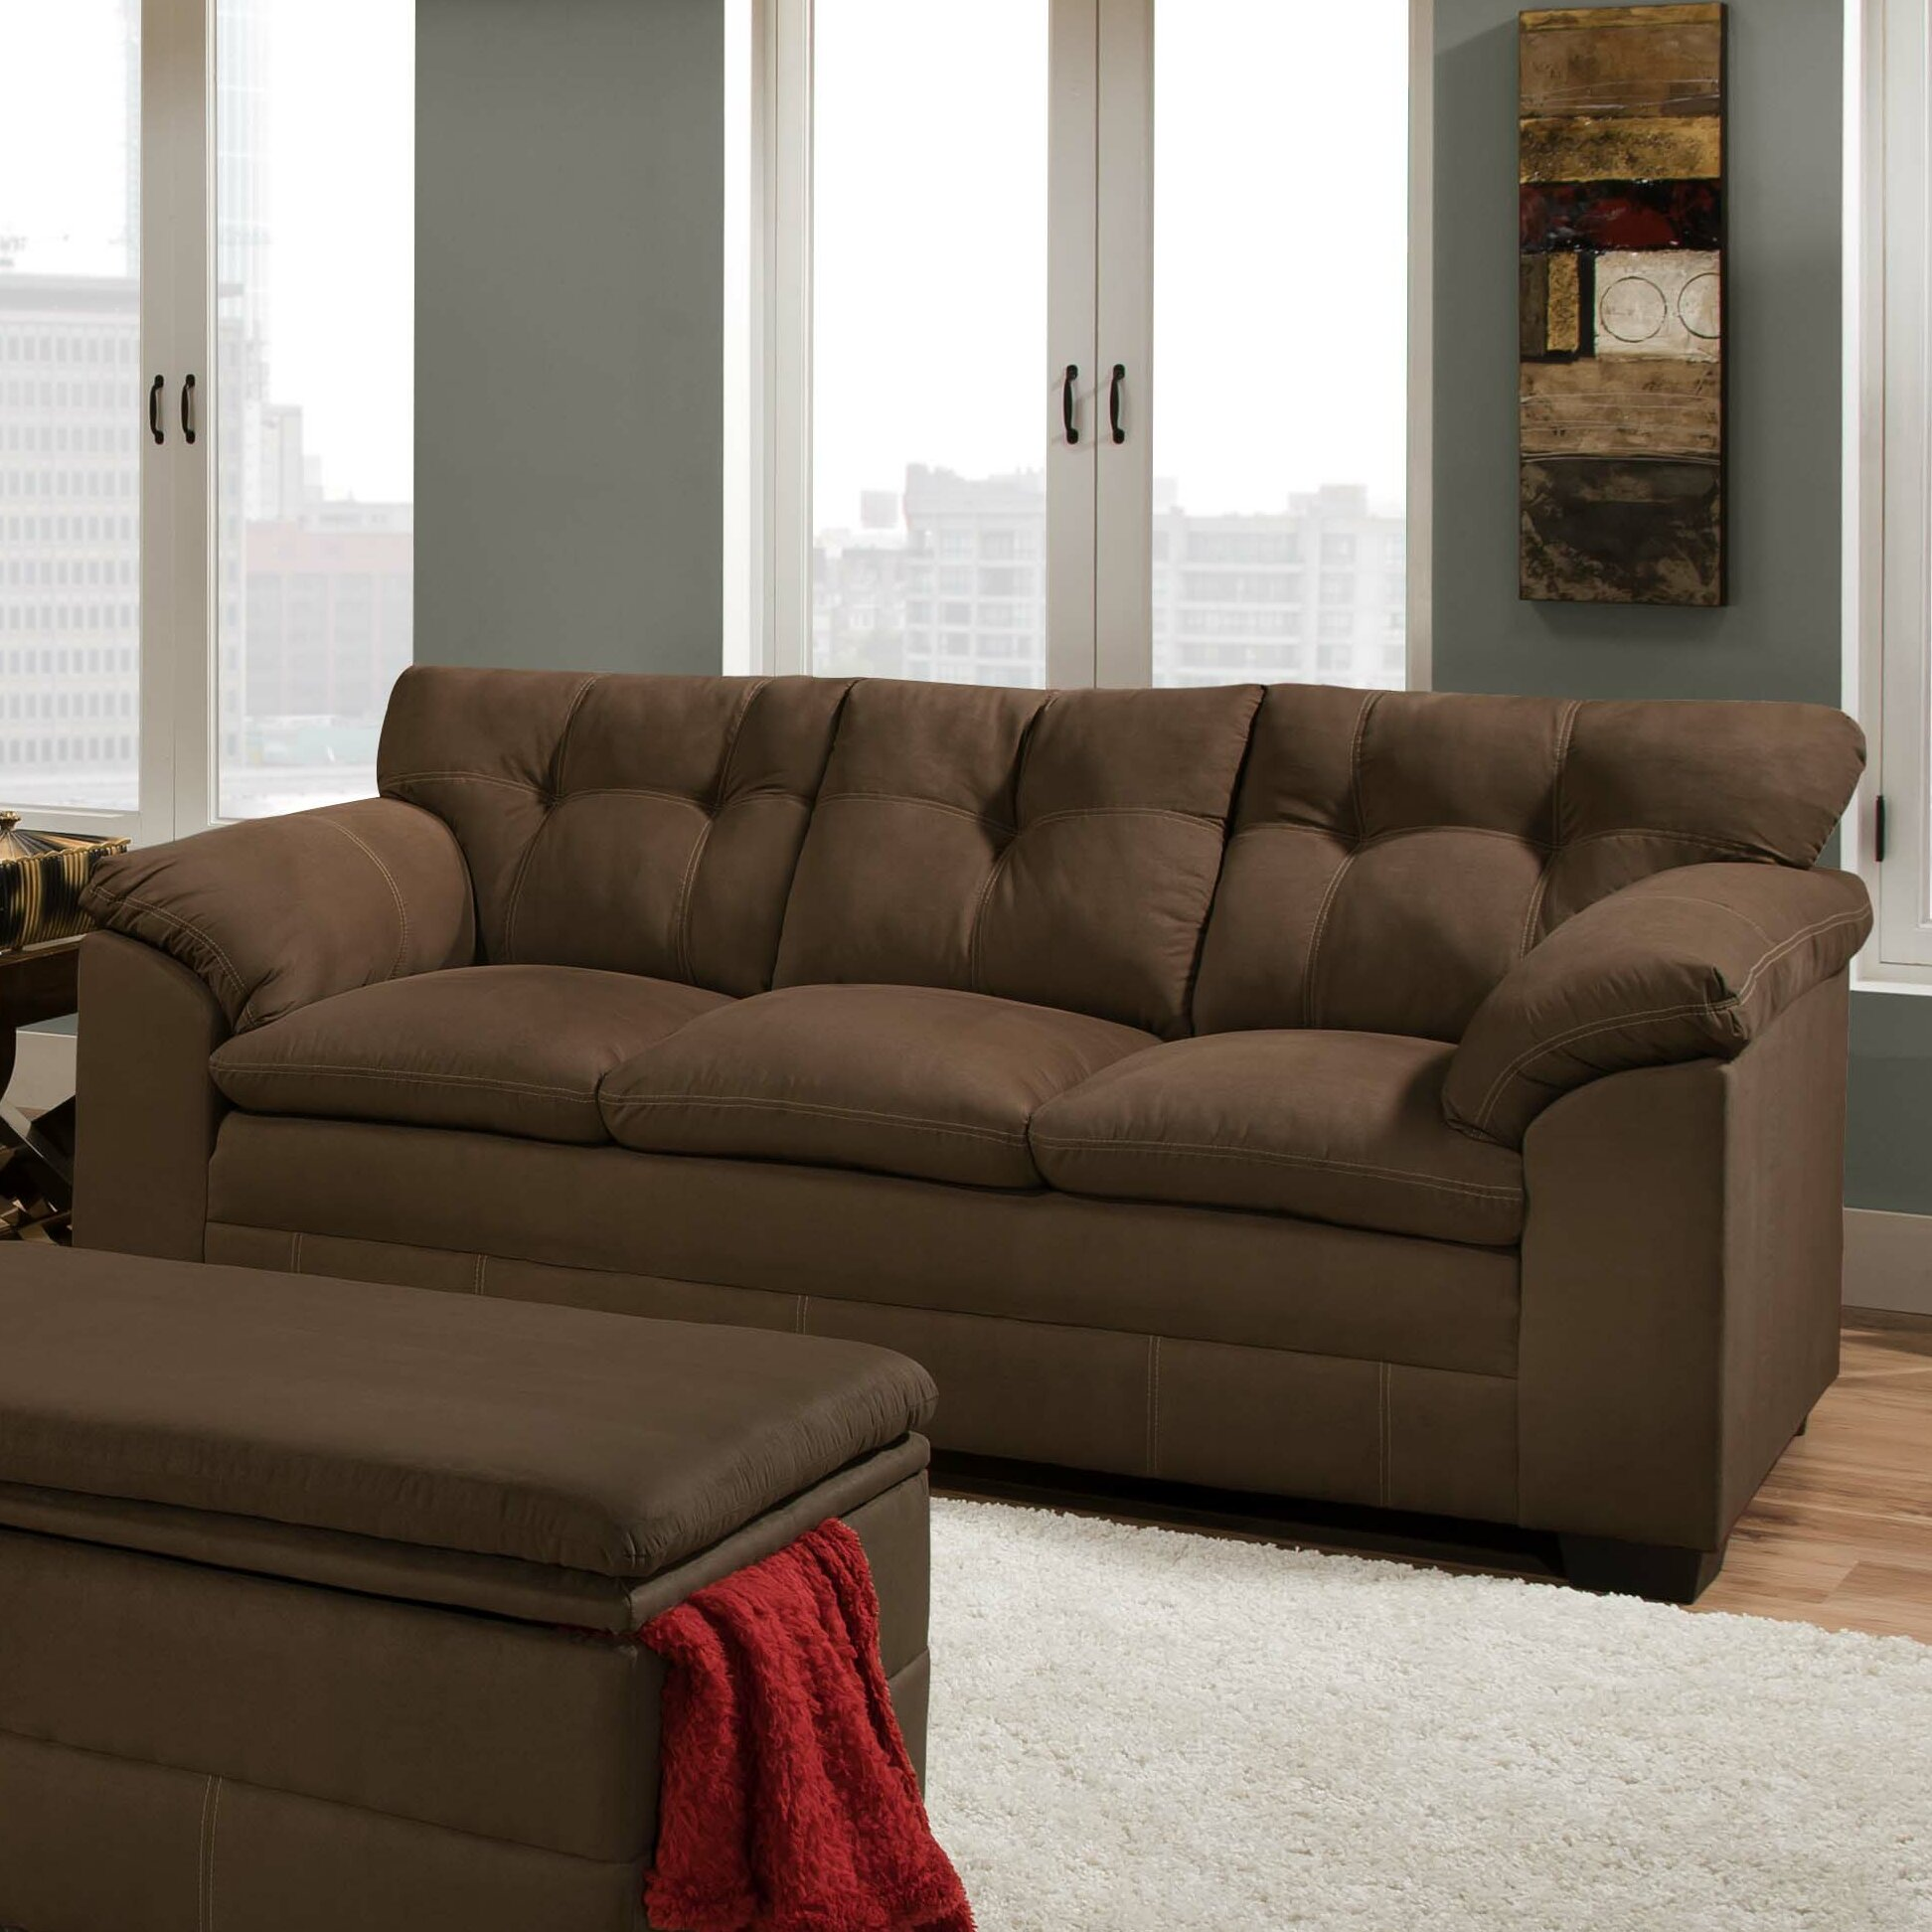 Simmons Upholstery Velocity Sofa Reviews Wayfair